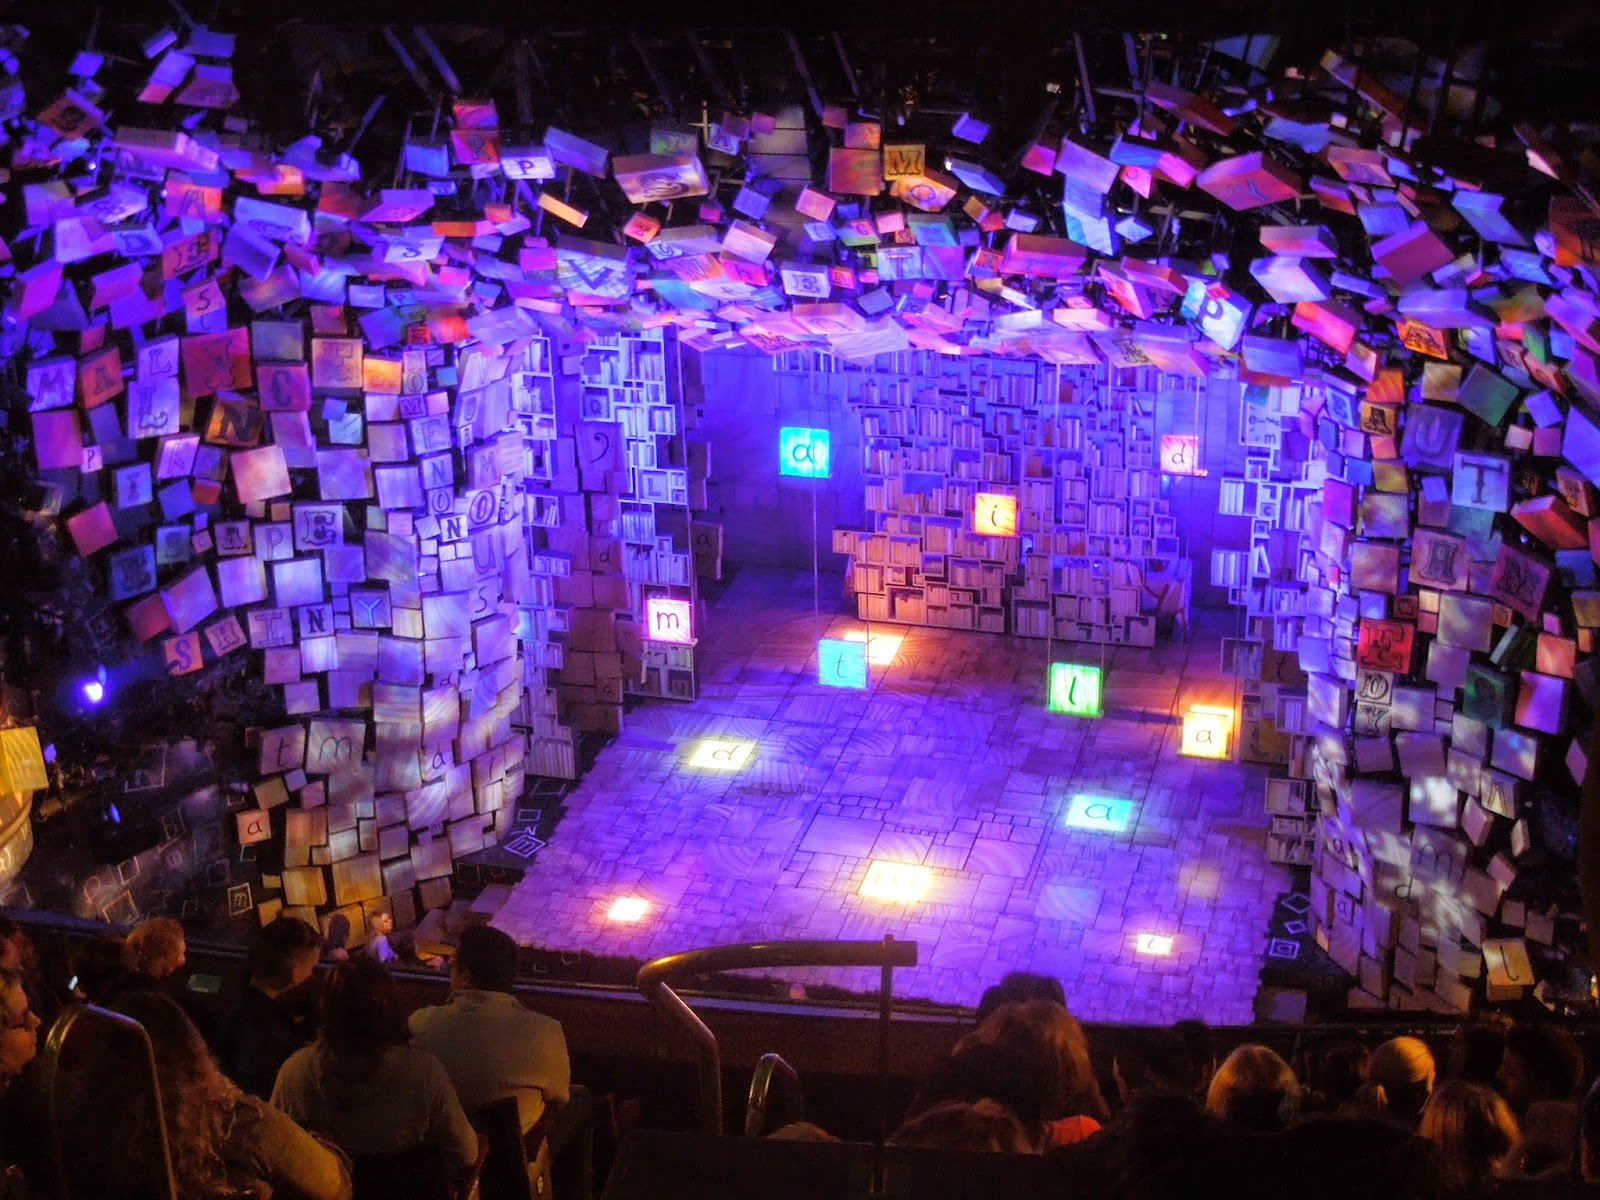 Sarah S Celeb Encounters Matilda The Musical January 2015